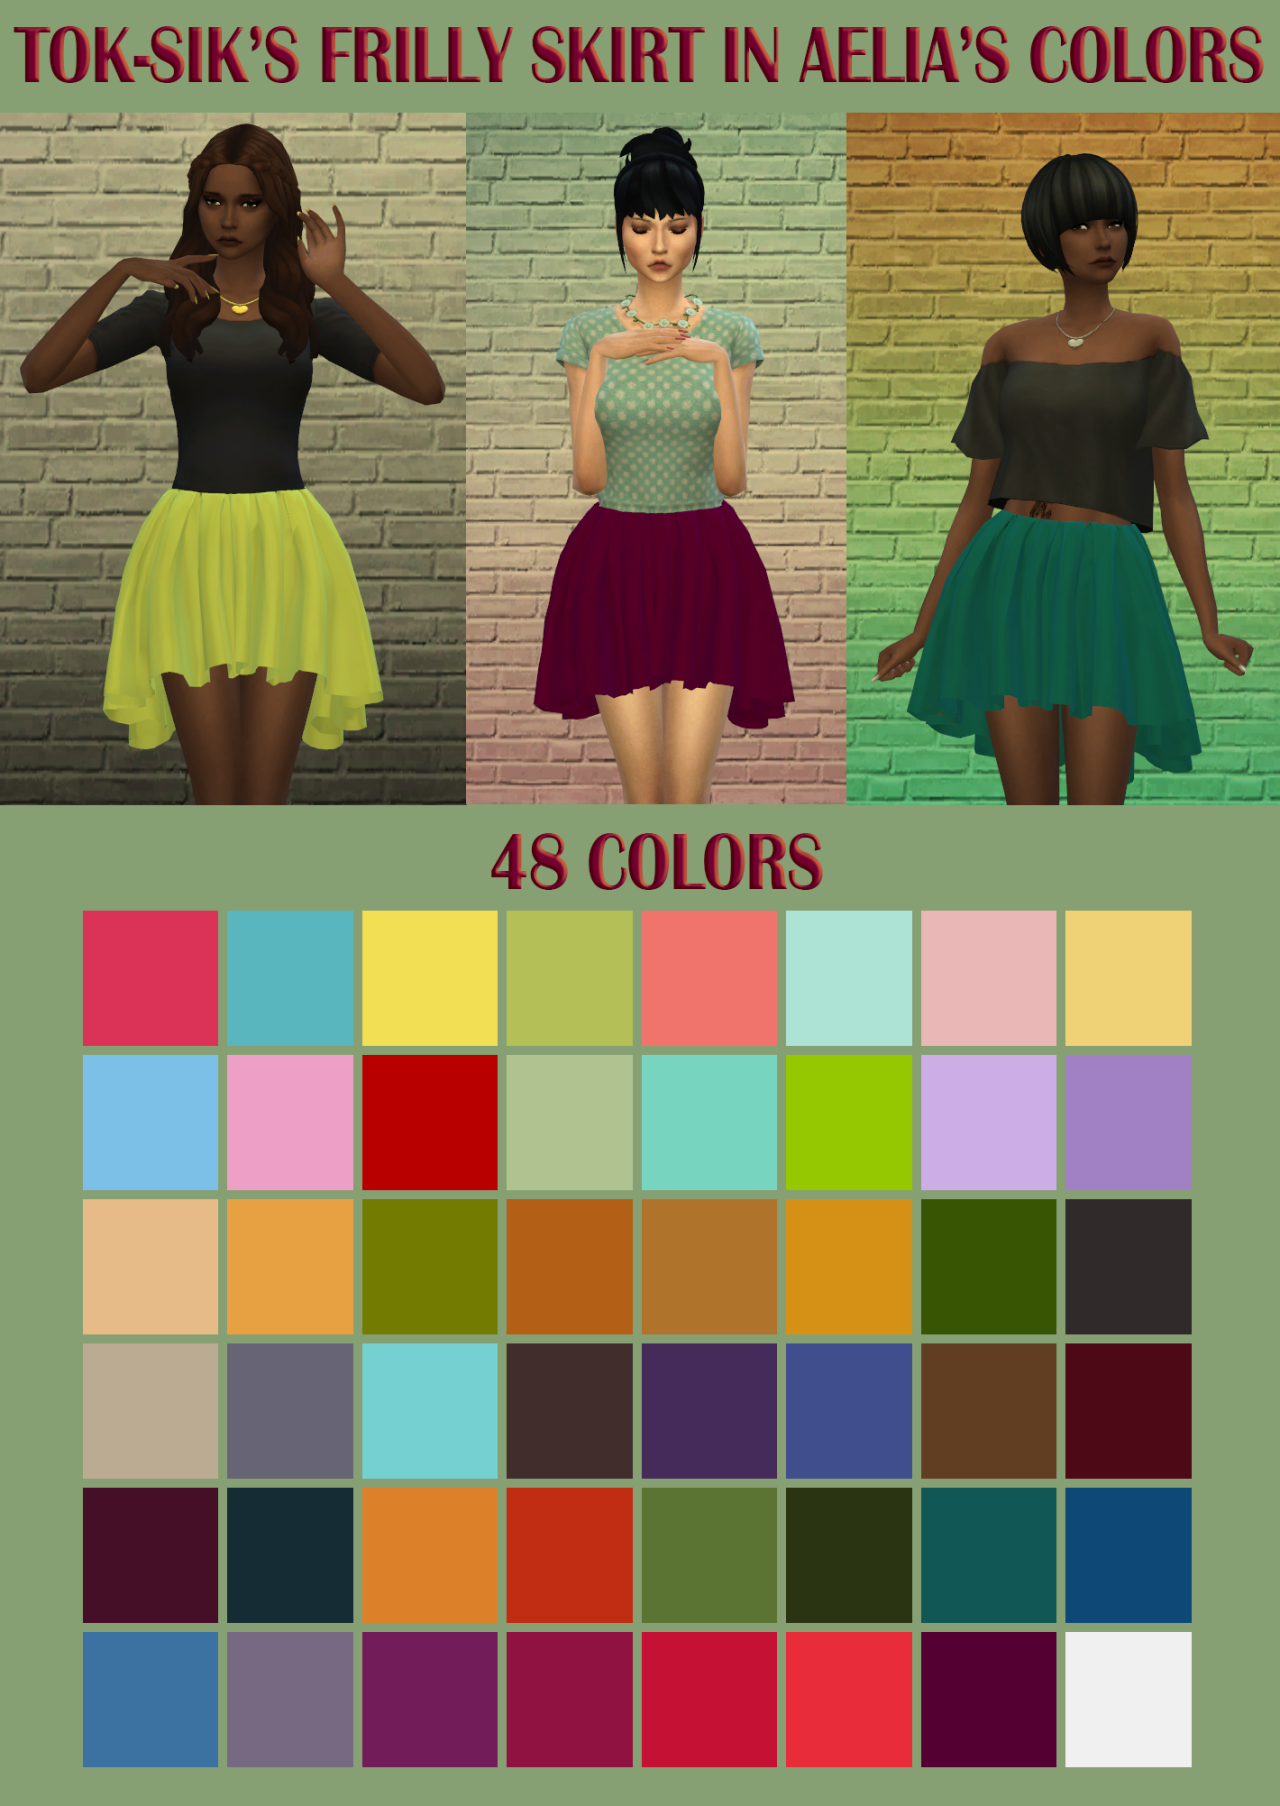 TokSik Frilly Skirt in Aelia's Colors by Amylet